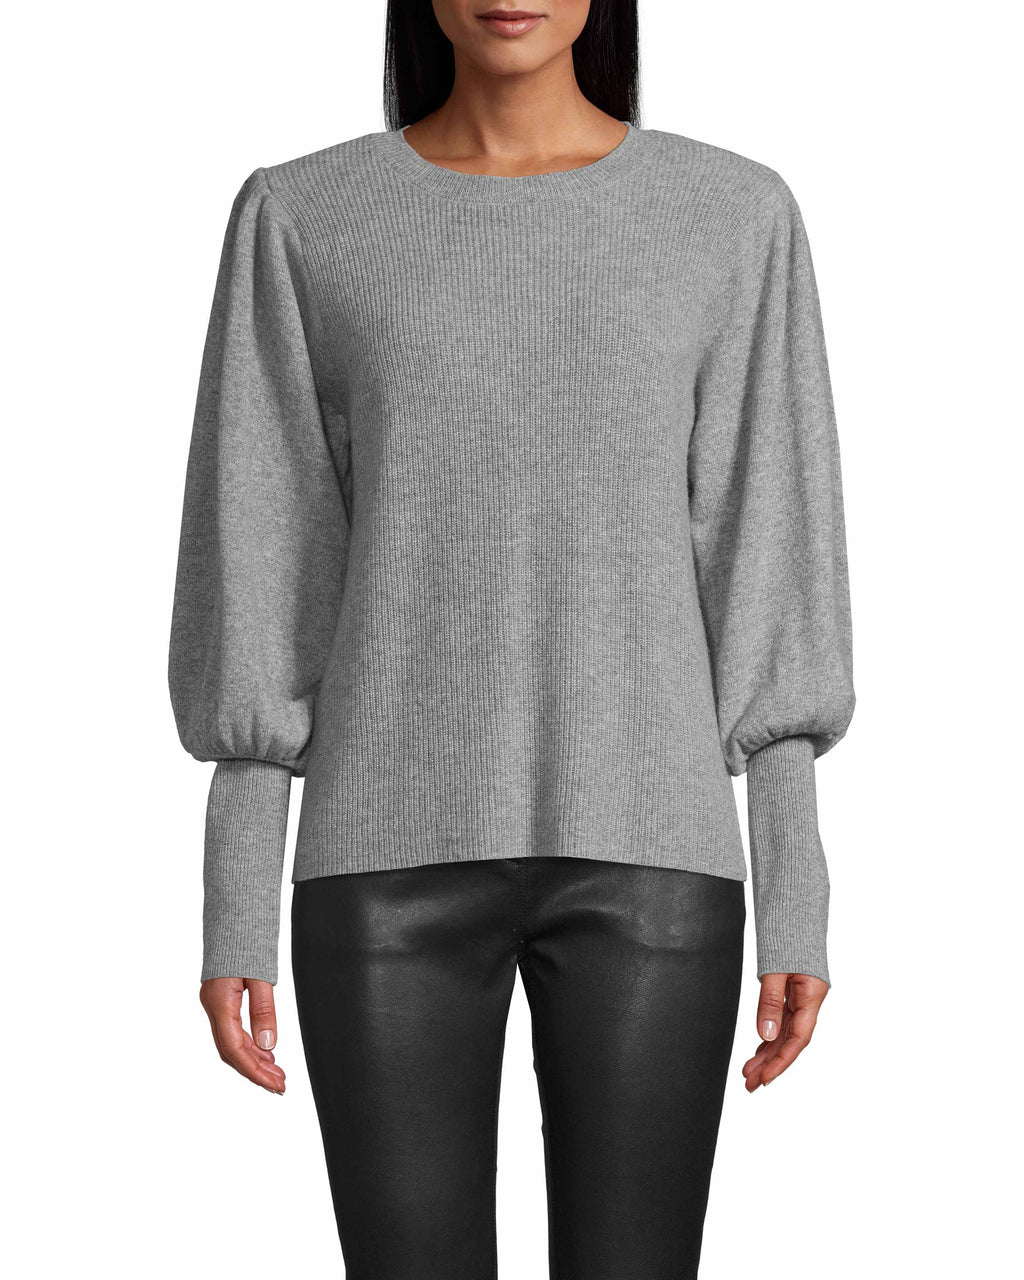 CT18043 - CASHMERE CREW NECK PADDED SHOULDER SWEATER - tops - knitwear - THIS CASHMERE SWEATER IS A CLOSET ESSENTIAL. FEATURES A CHIC PUFFED SLEEVE, RIBBED CUFFS AND CLASSIC CREW NECK. Add 1 line break STYLIST TIP: PAIR WITH JEANS AND FASHION SNEAKERS FOR A CASUAL, DAYTIME LOOK.